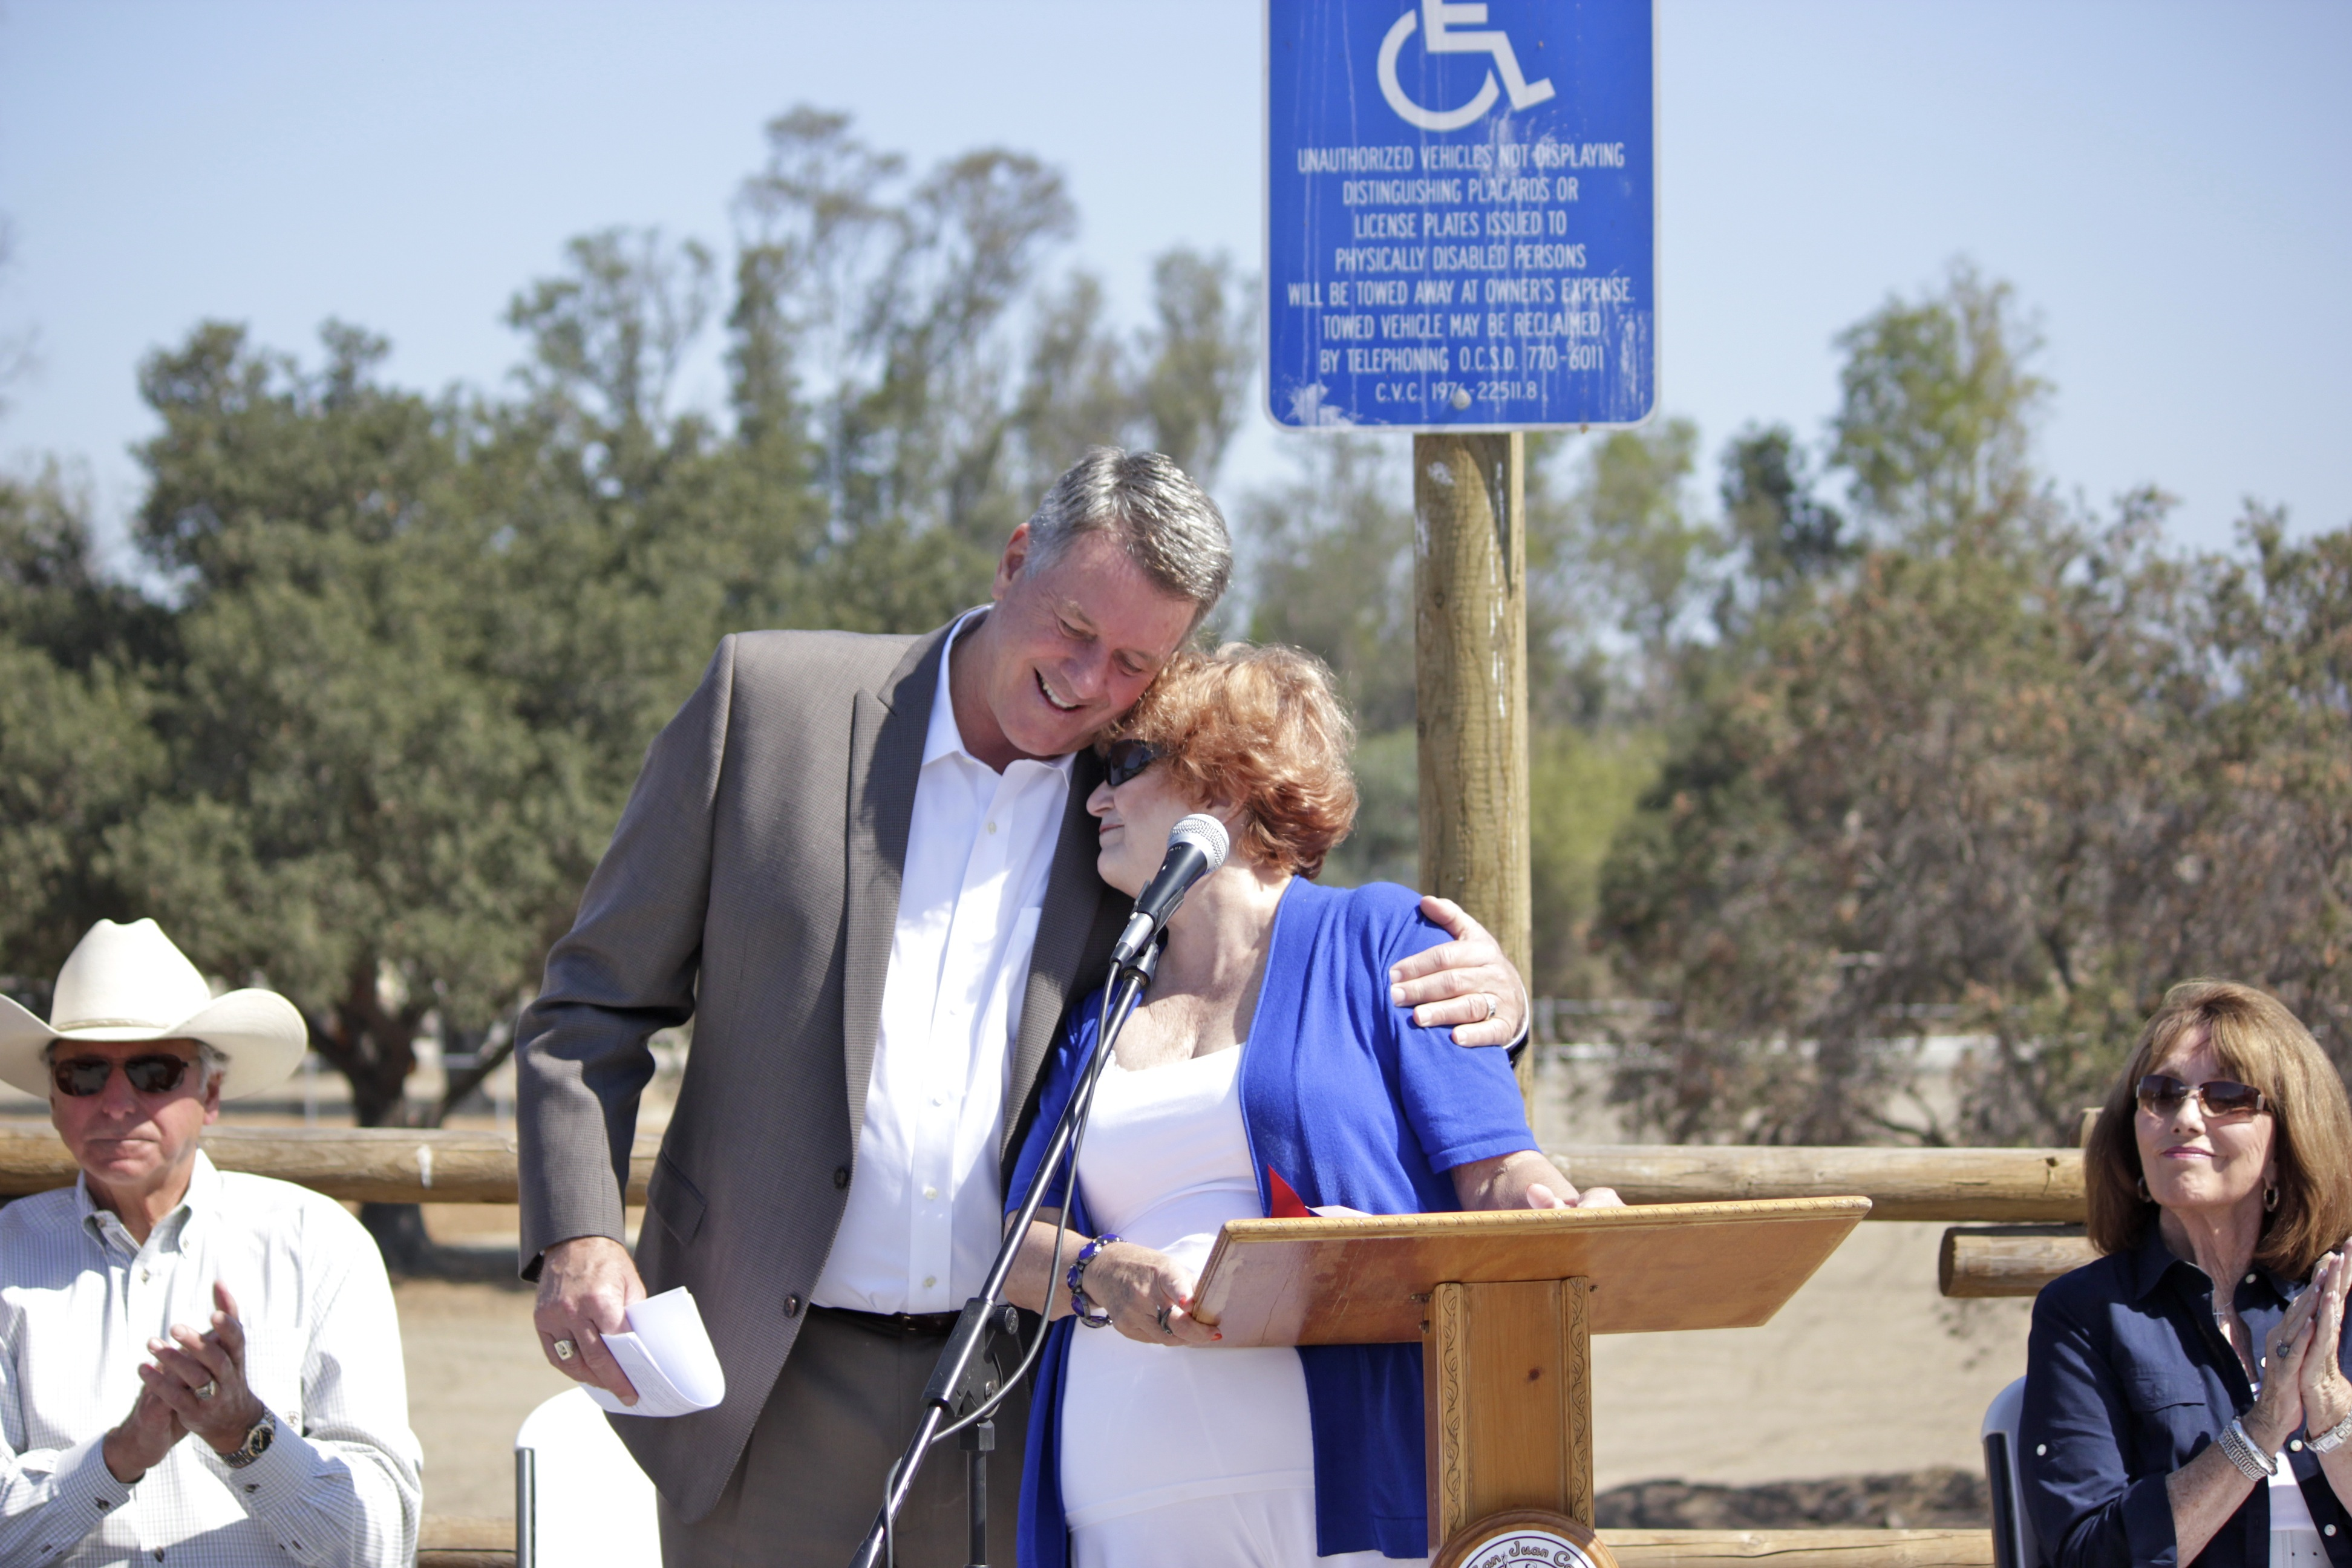 Mayor John Taylor and Goldee Cortese embrace during the grand opening ceremony for the Dr. Joe Cortese Dog Park. Photo by Brian Park